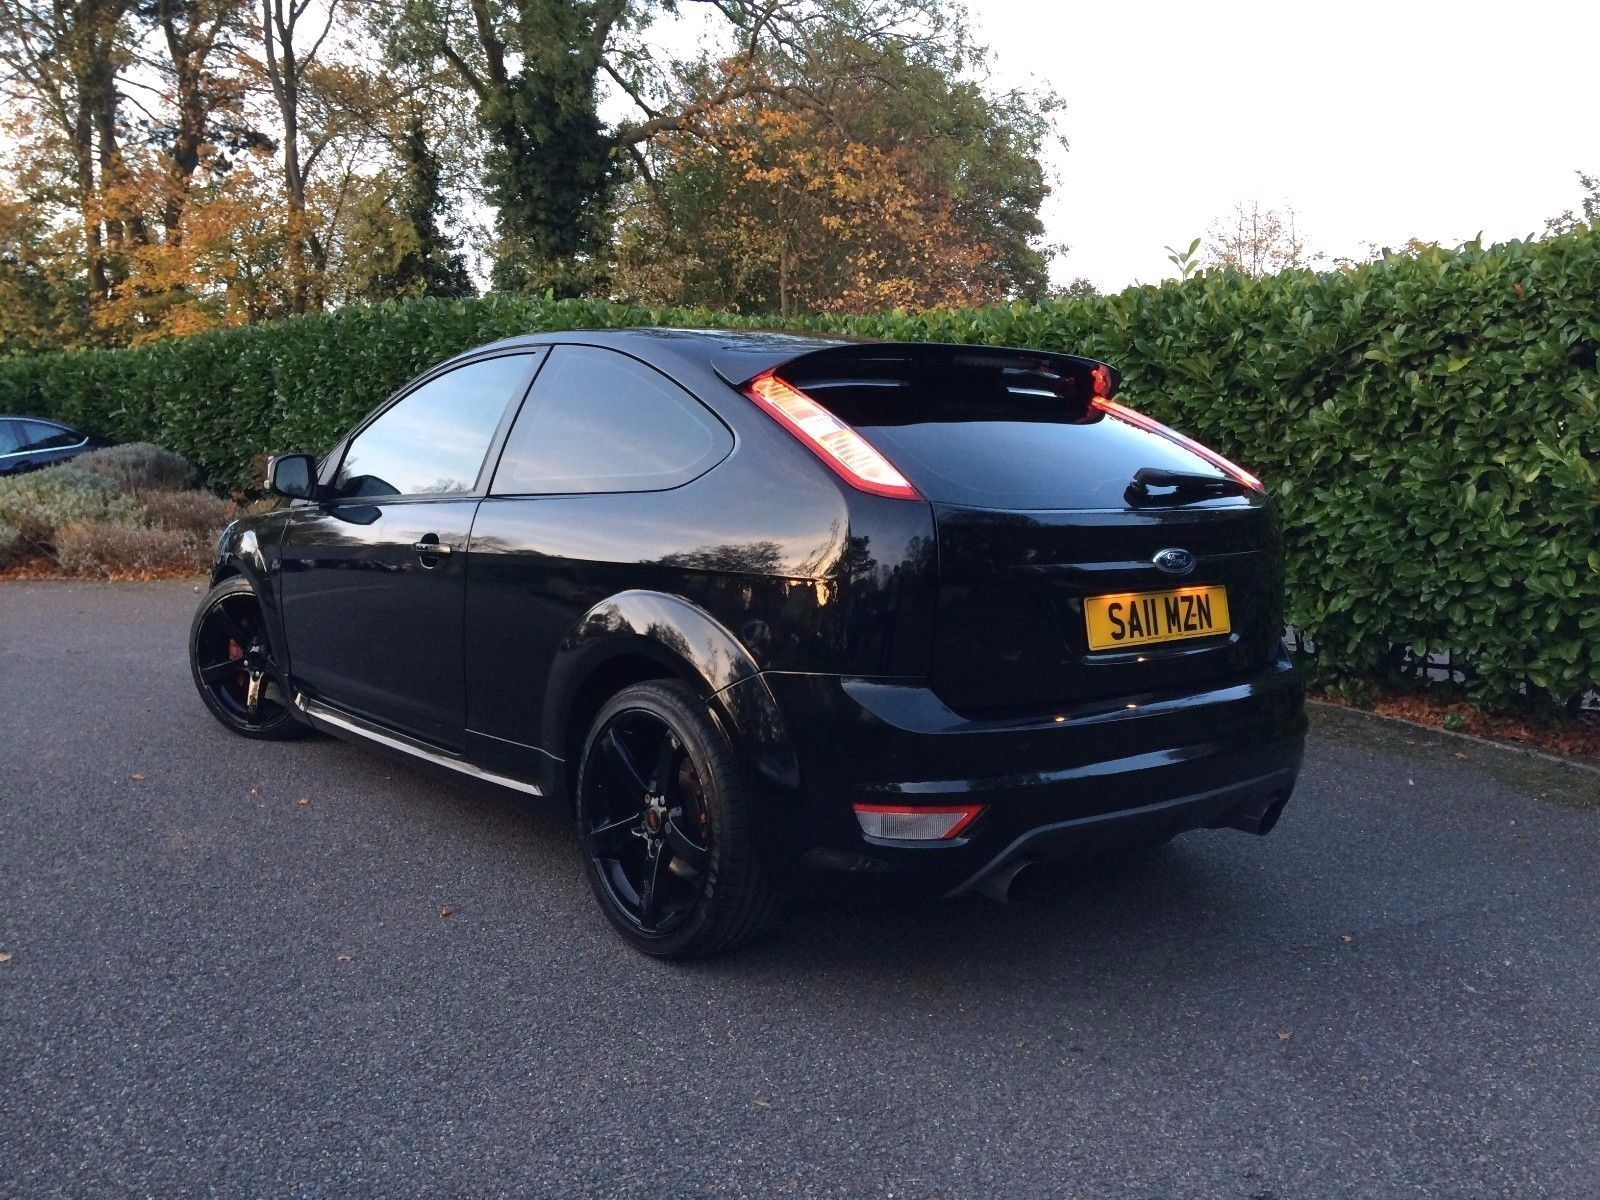 Looking For A 2011 Ford Focus St2 Black 3 Door 320bhp This One Is